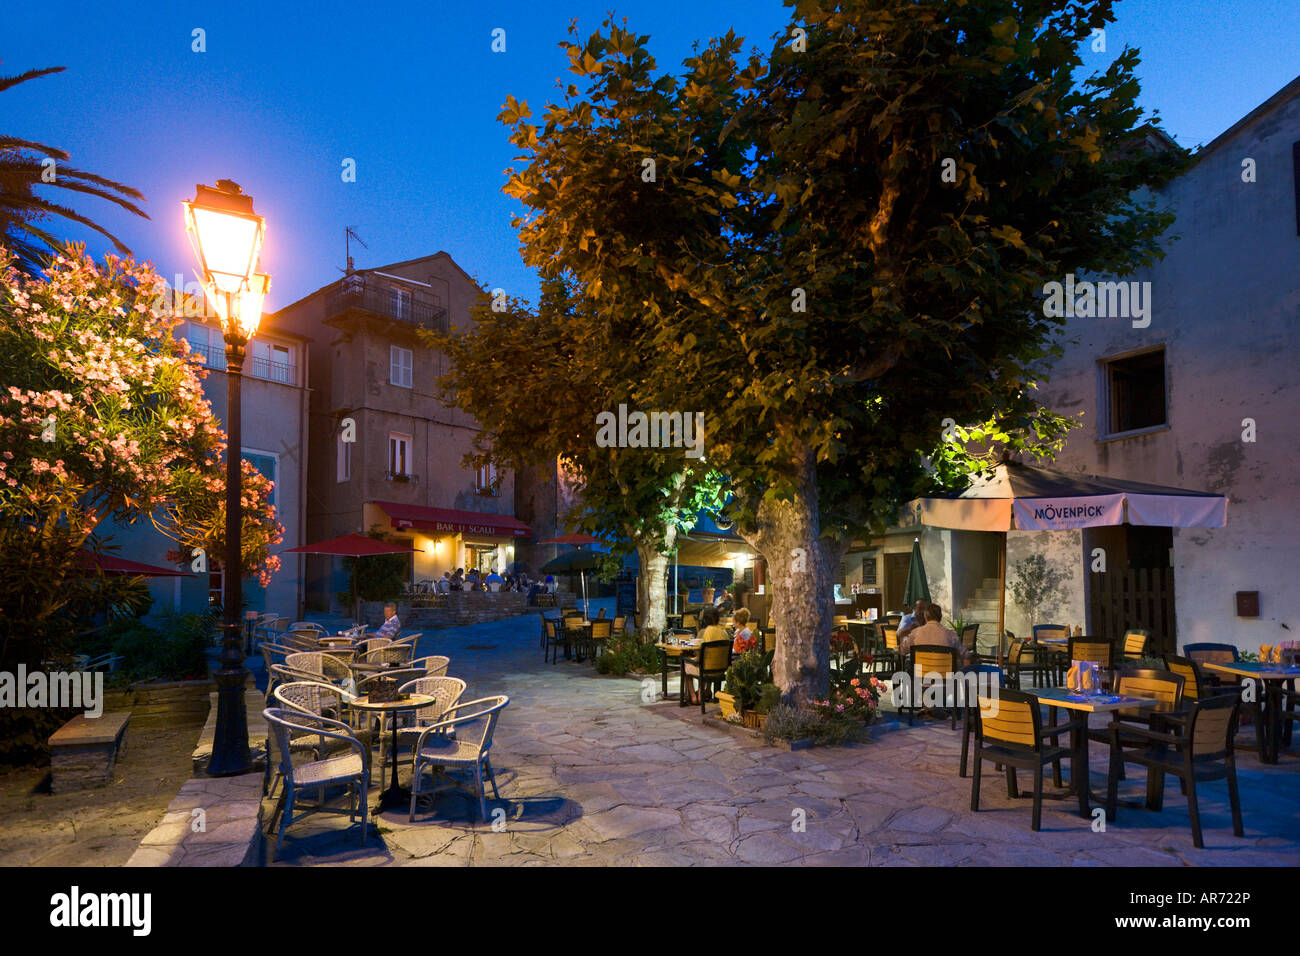 Cafe in the vieux port terra vecchia bastia corsica france stock - Cafe Bar At Night Erbalunga Cap Corse Corsica France Stock Image